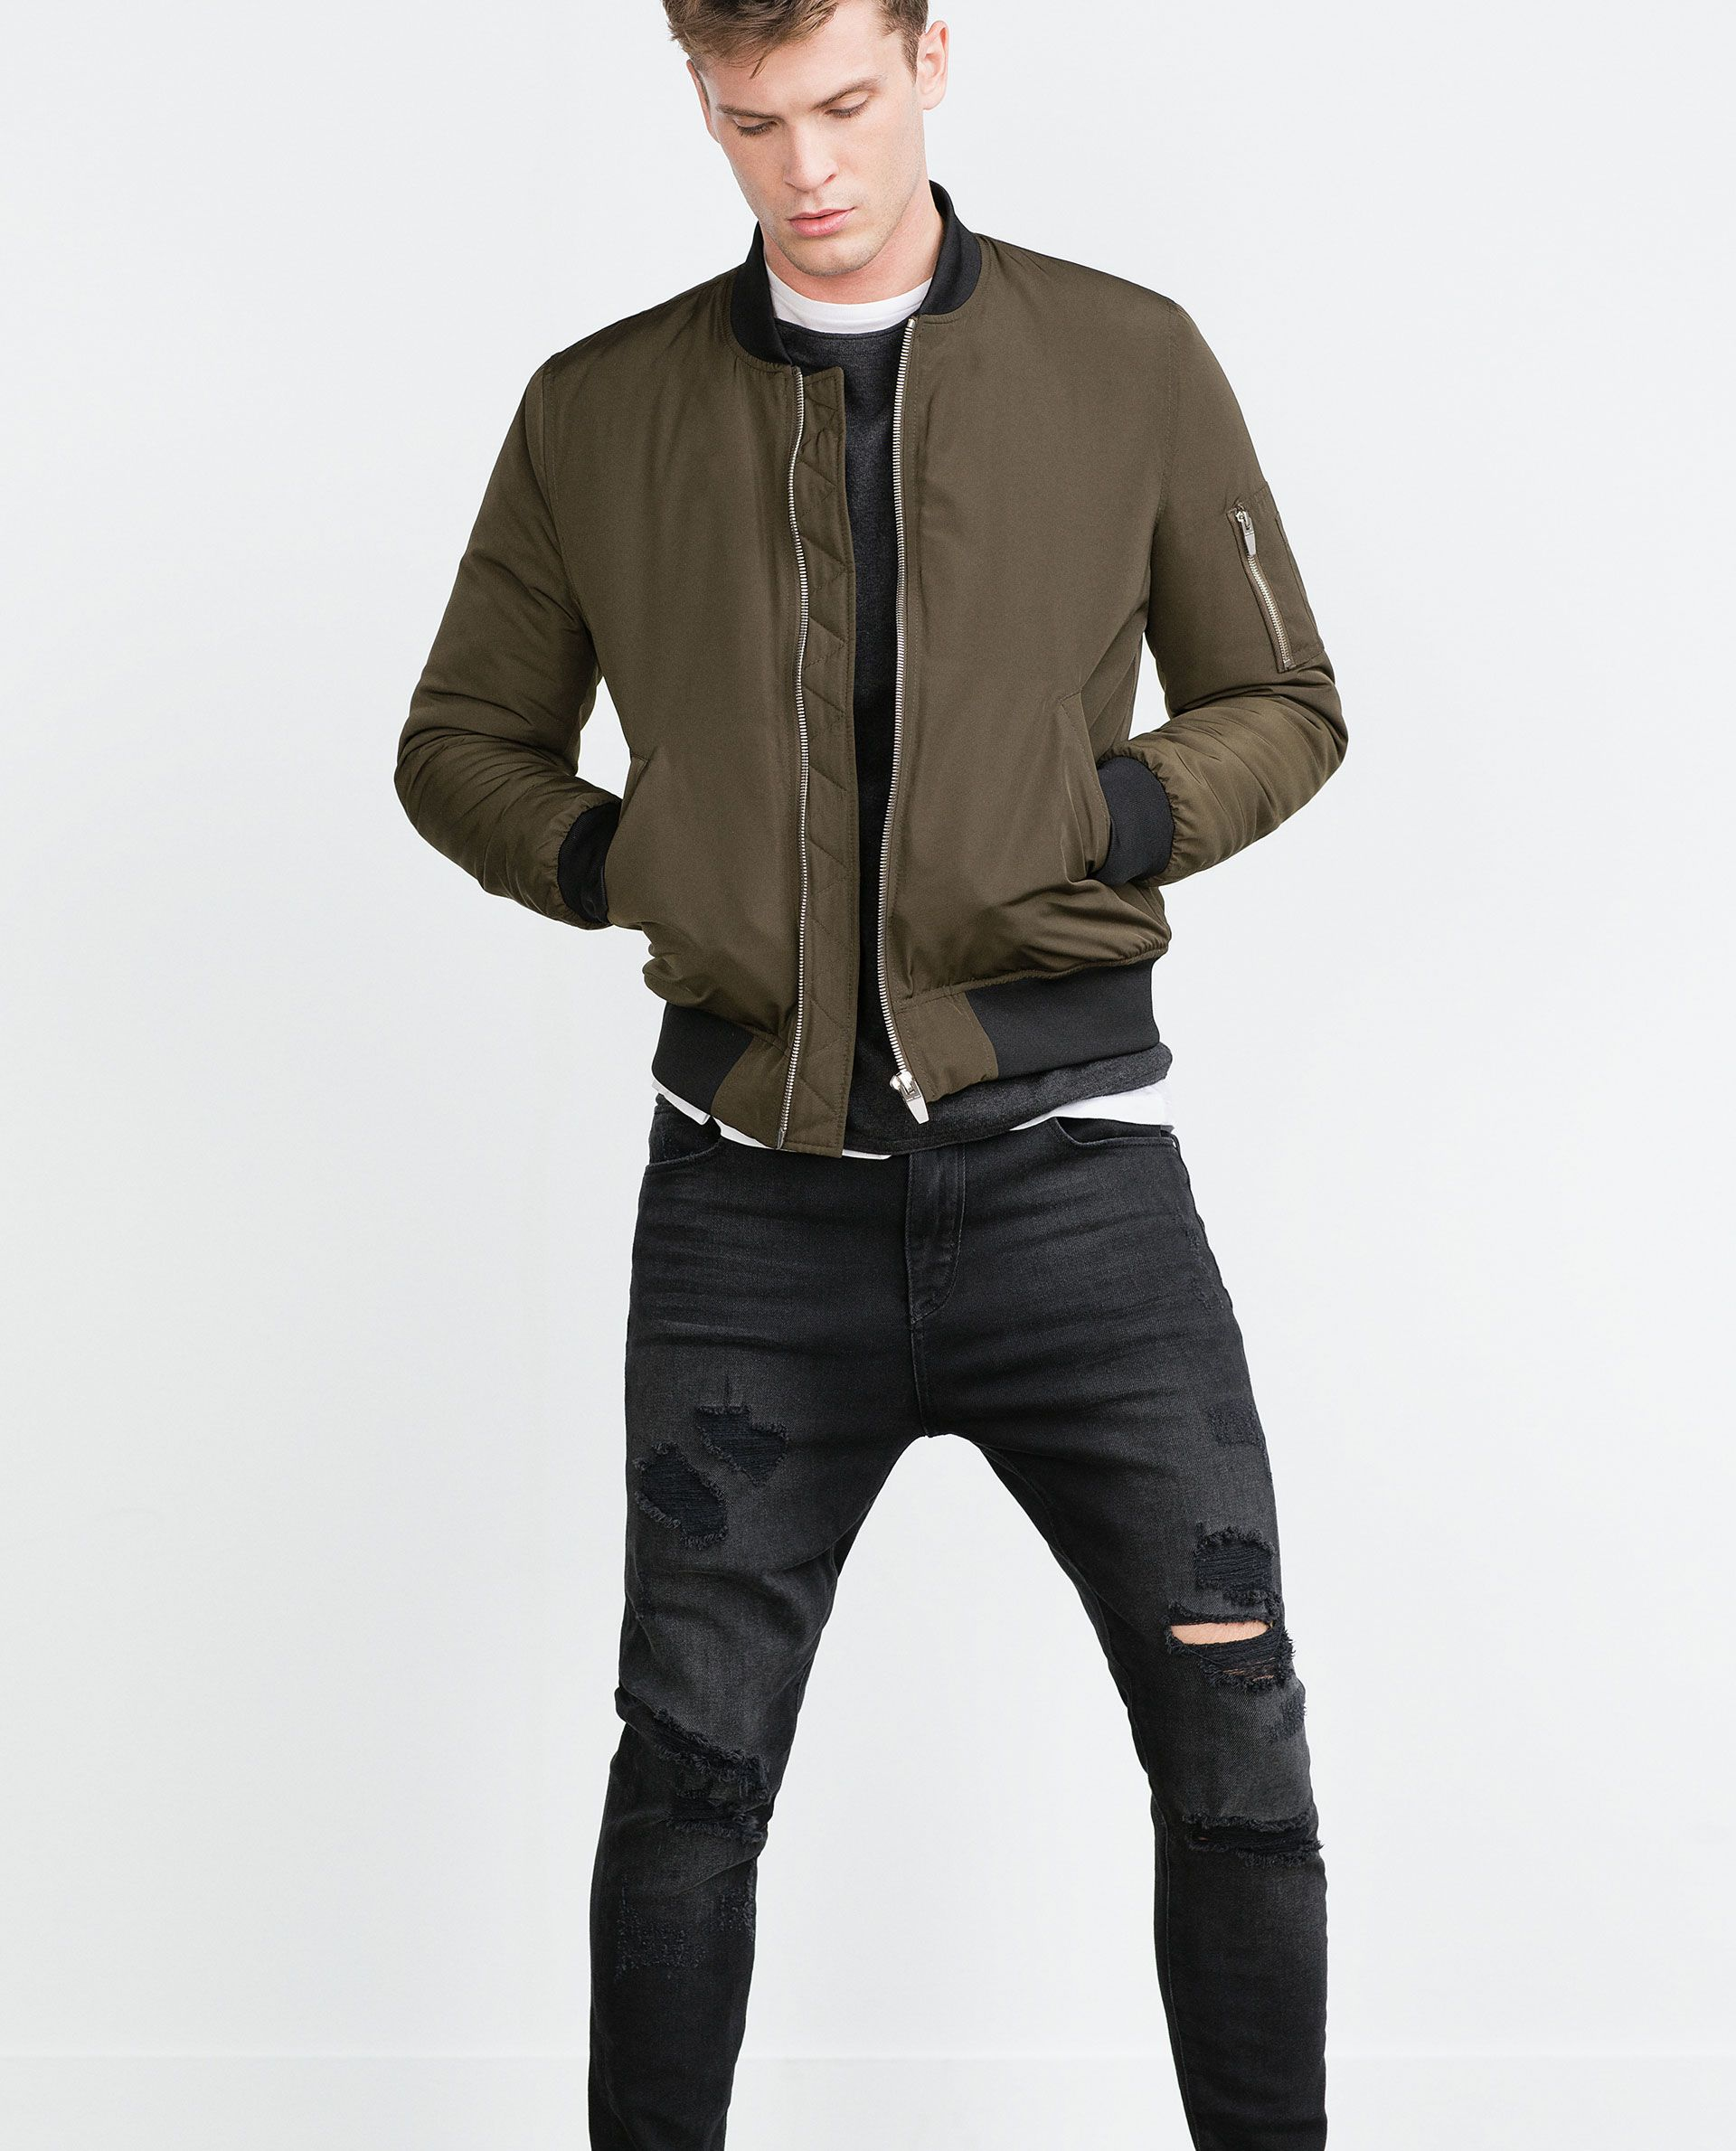 099aa45a6 BOMBER JACKET from Zara | M | Bomber jacket men, Bomber jacket ...